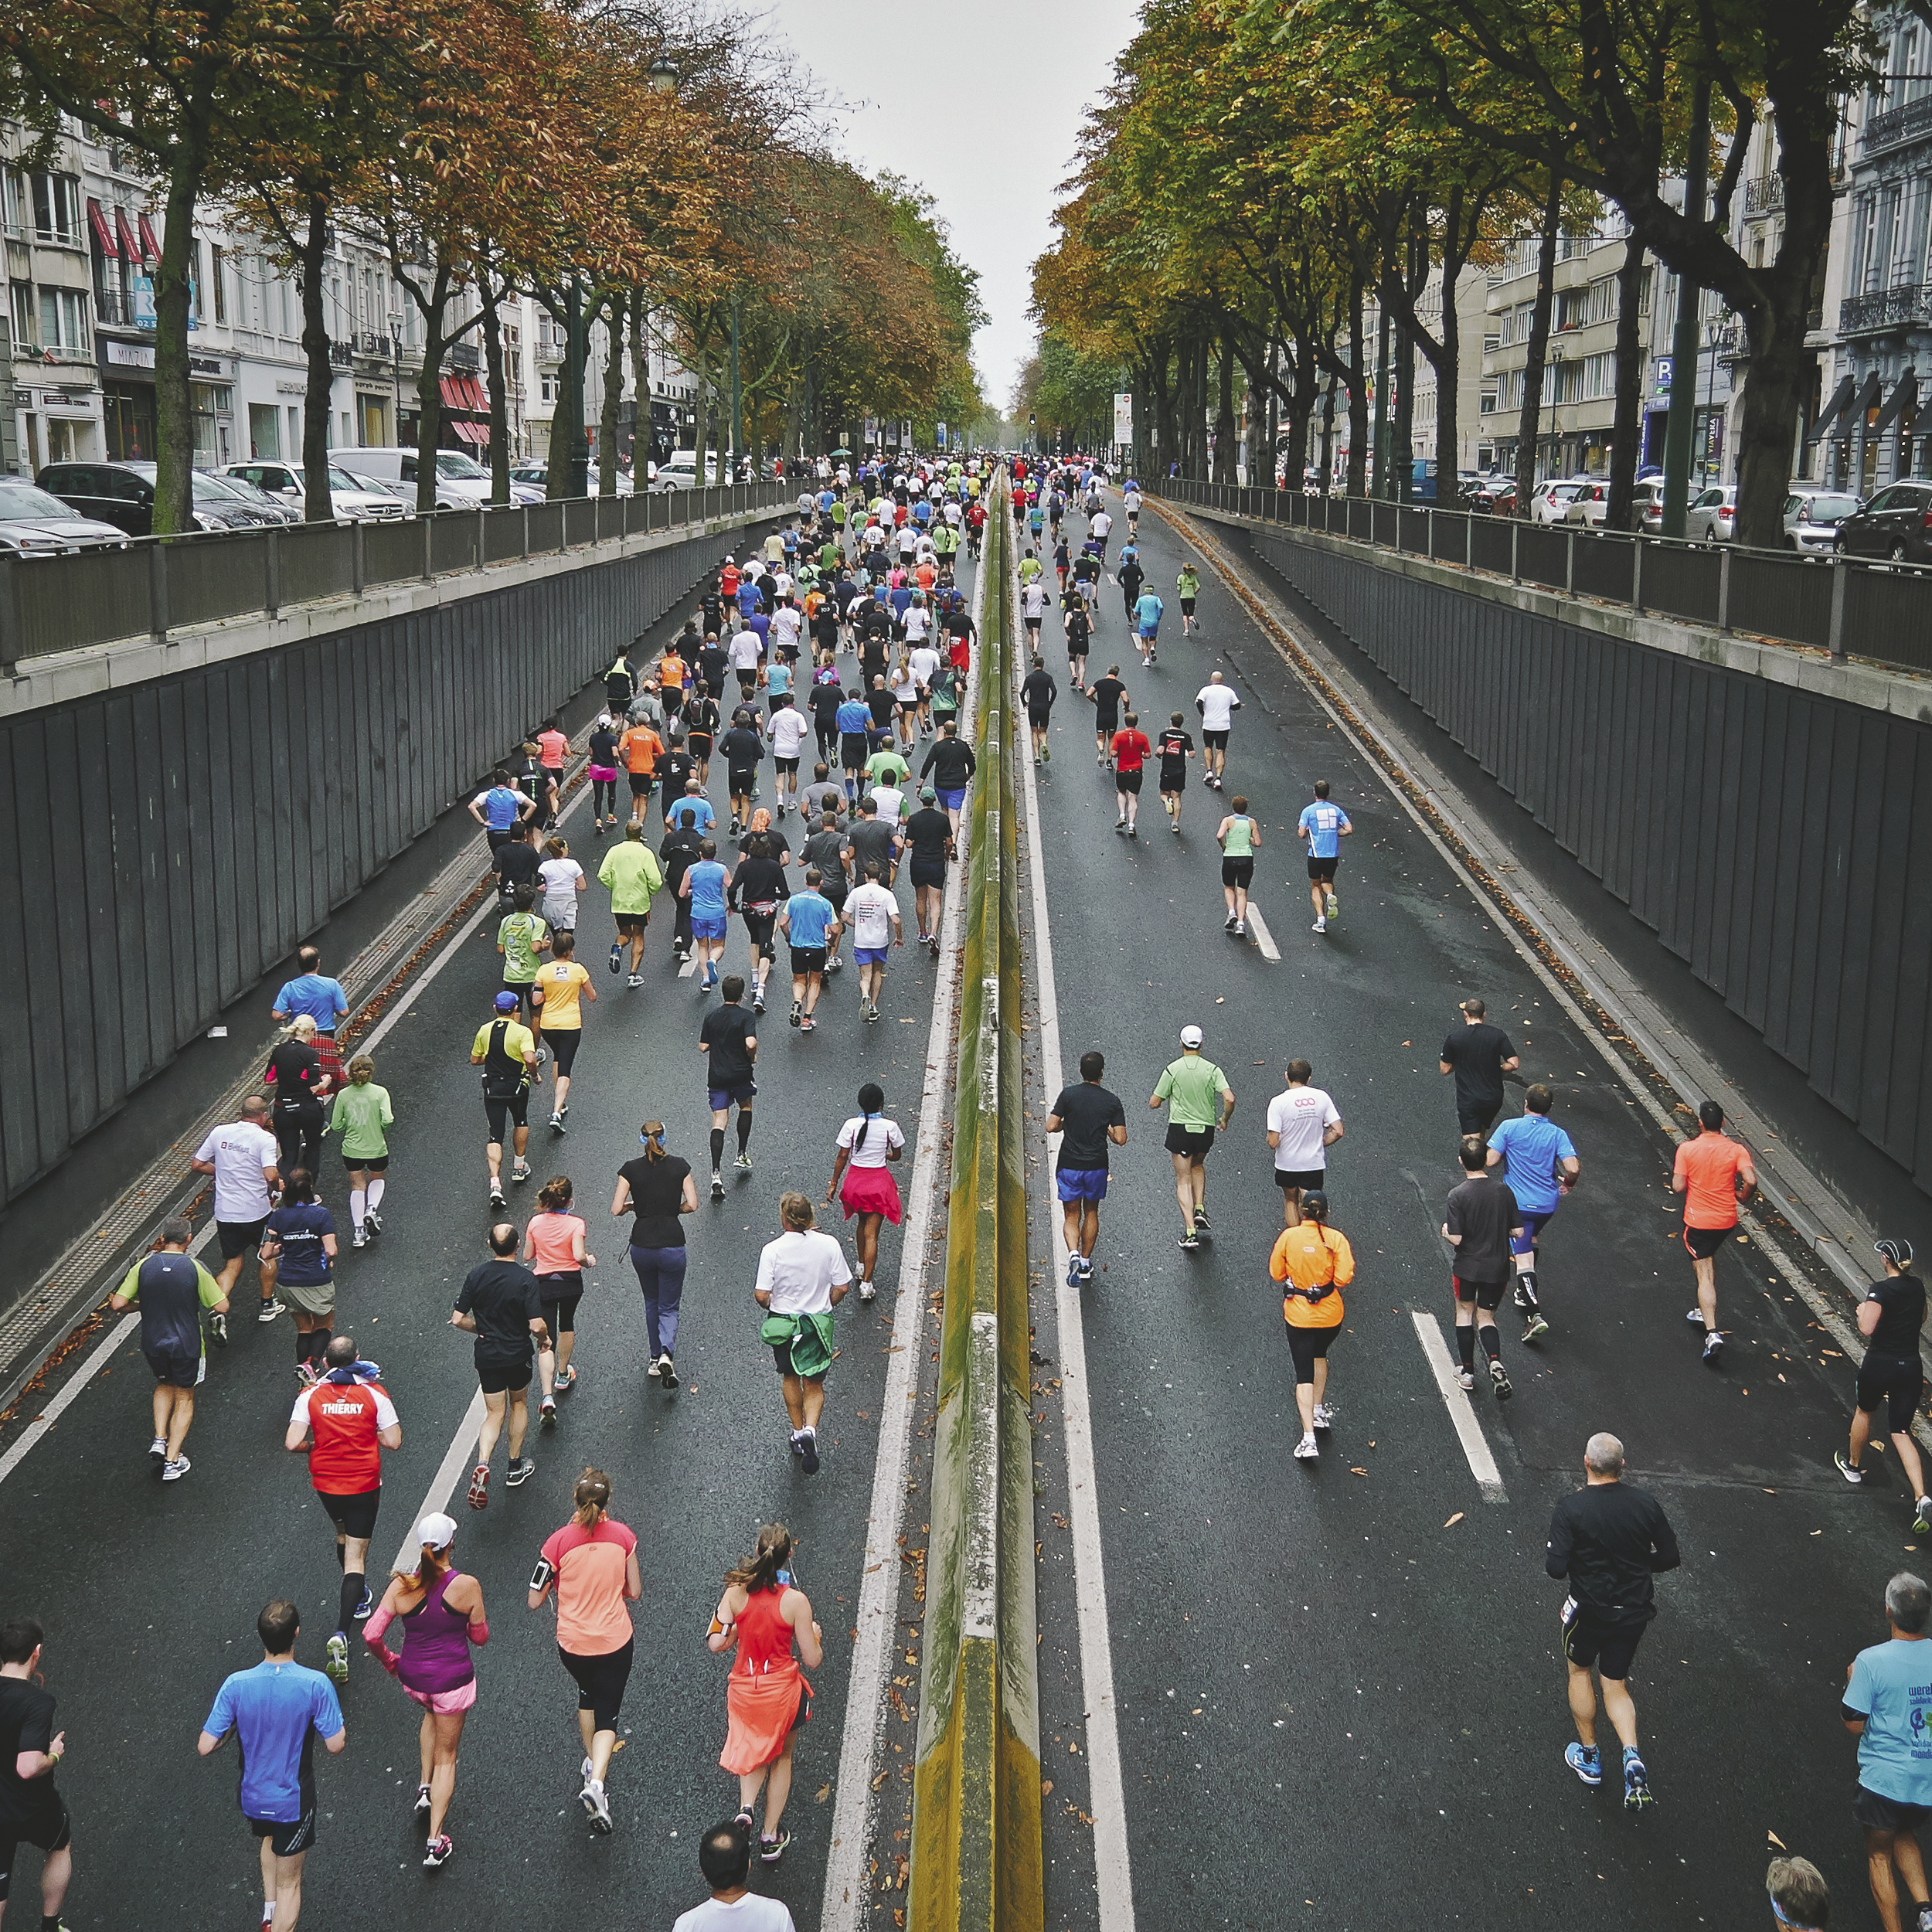 Mental Health & Running in the UK - What's the current state of mental health in the UK? What's being done to encourage people to start running?